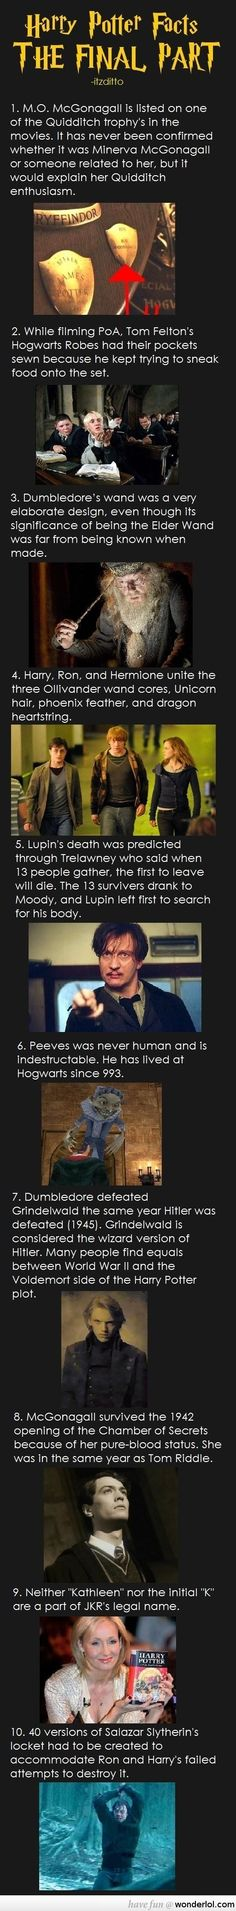 Facts You Didn't Know About Harry Potter